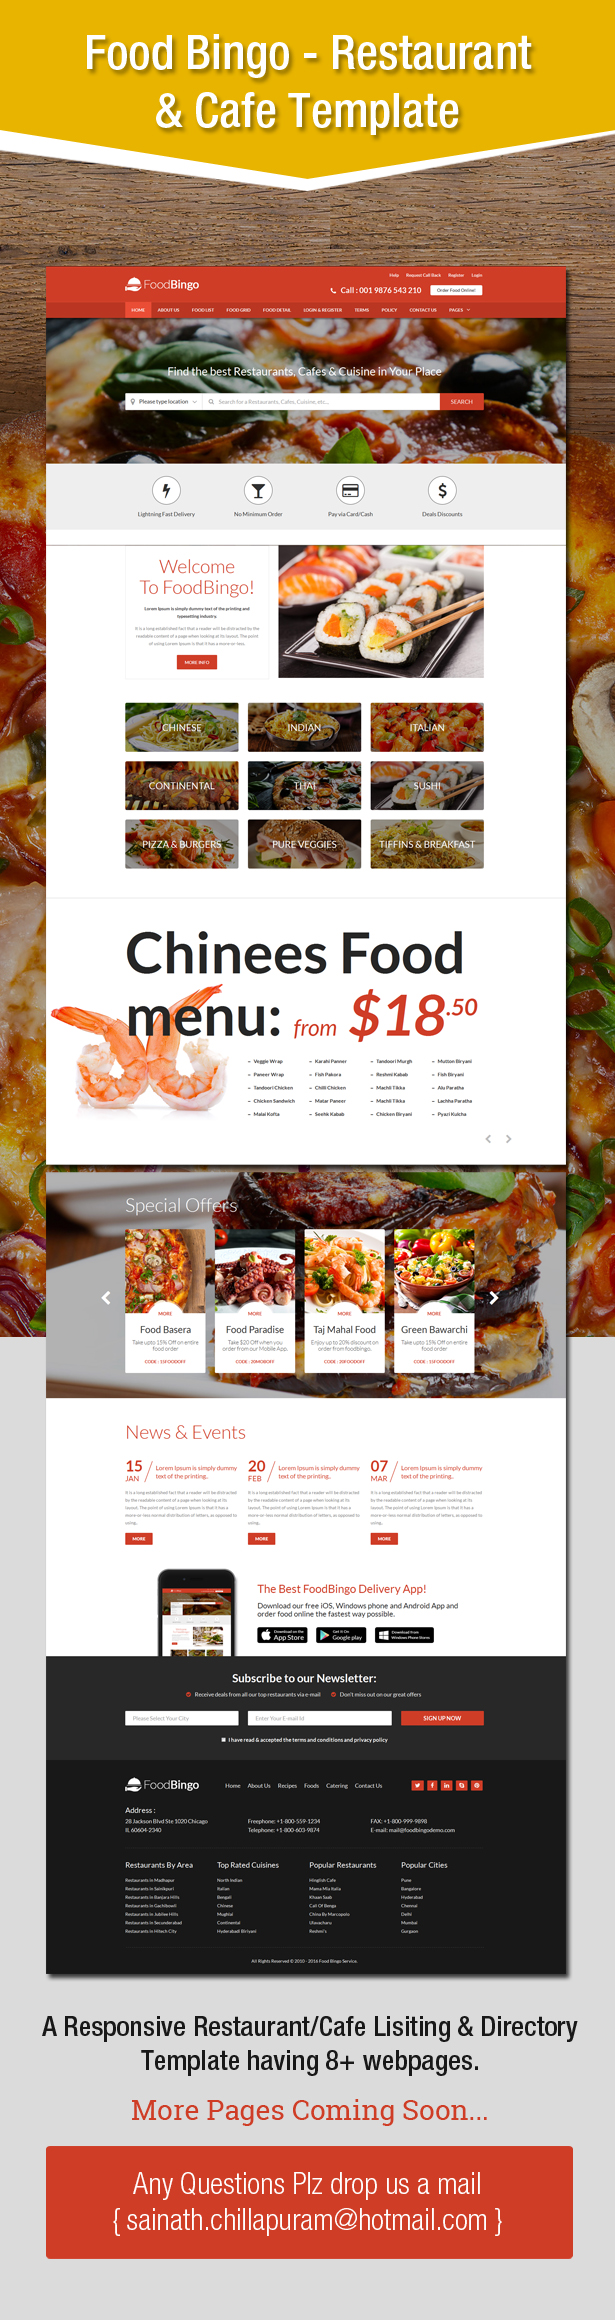 FoodBingo - A Responsive Restaurant/Cafe Lisiting & Directory Template